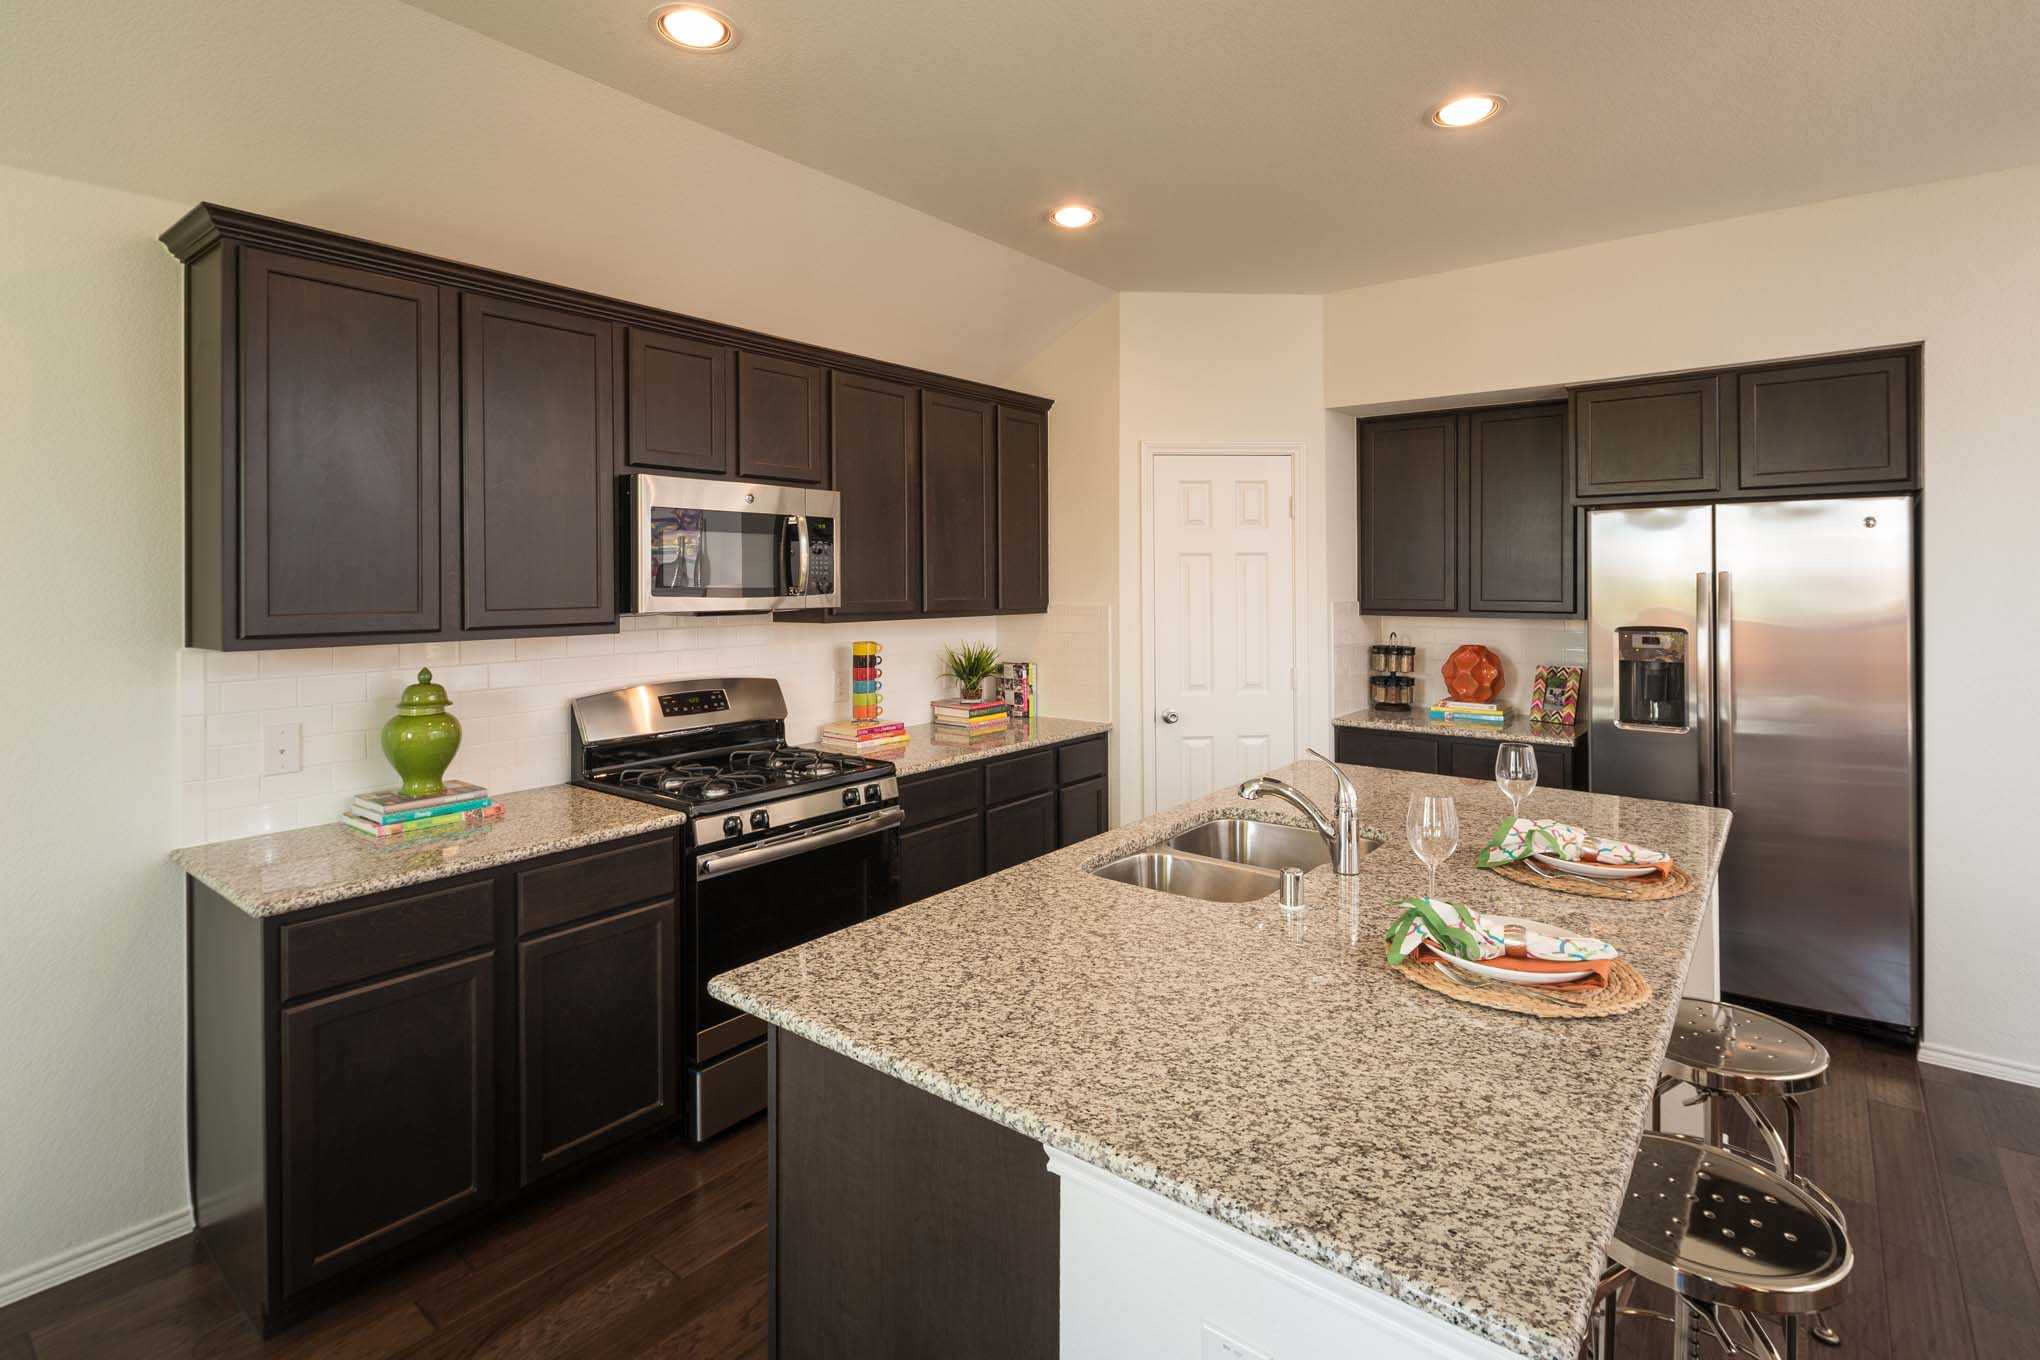 Model Home in Dallas / Fort Worth Texas, Clements Ranch community